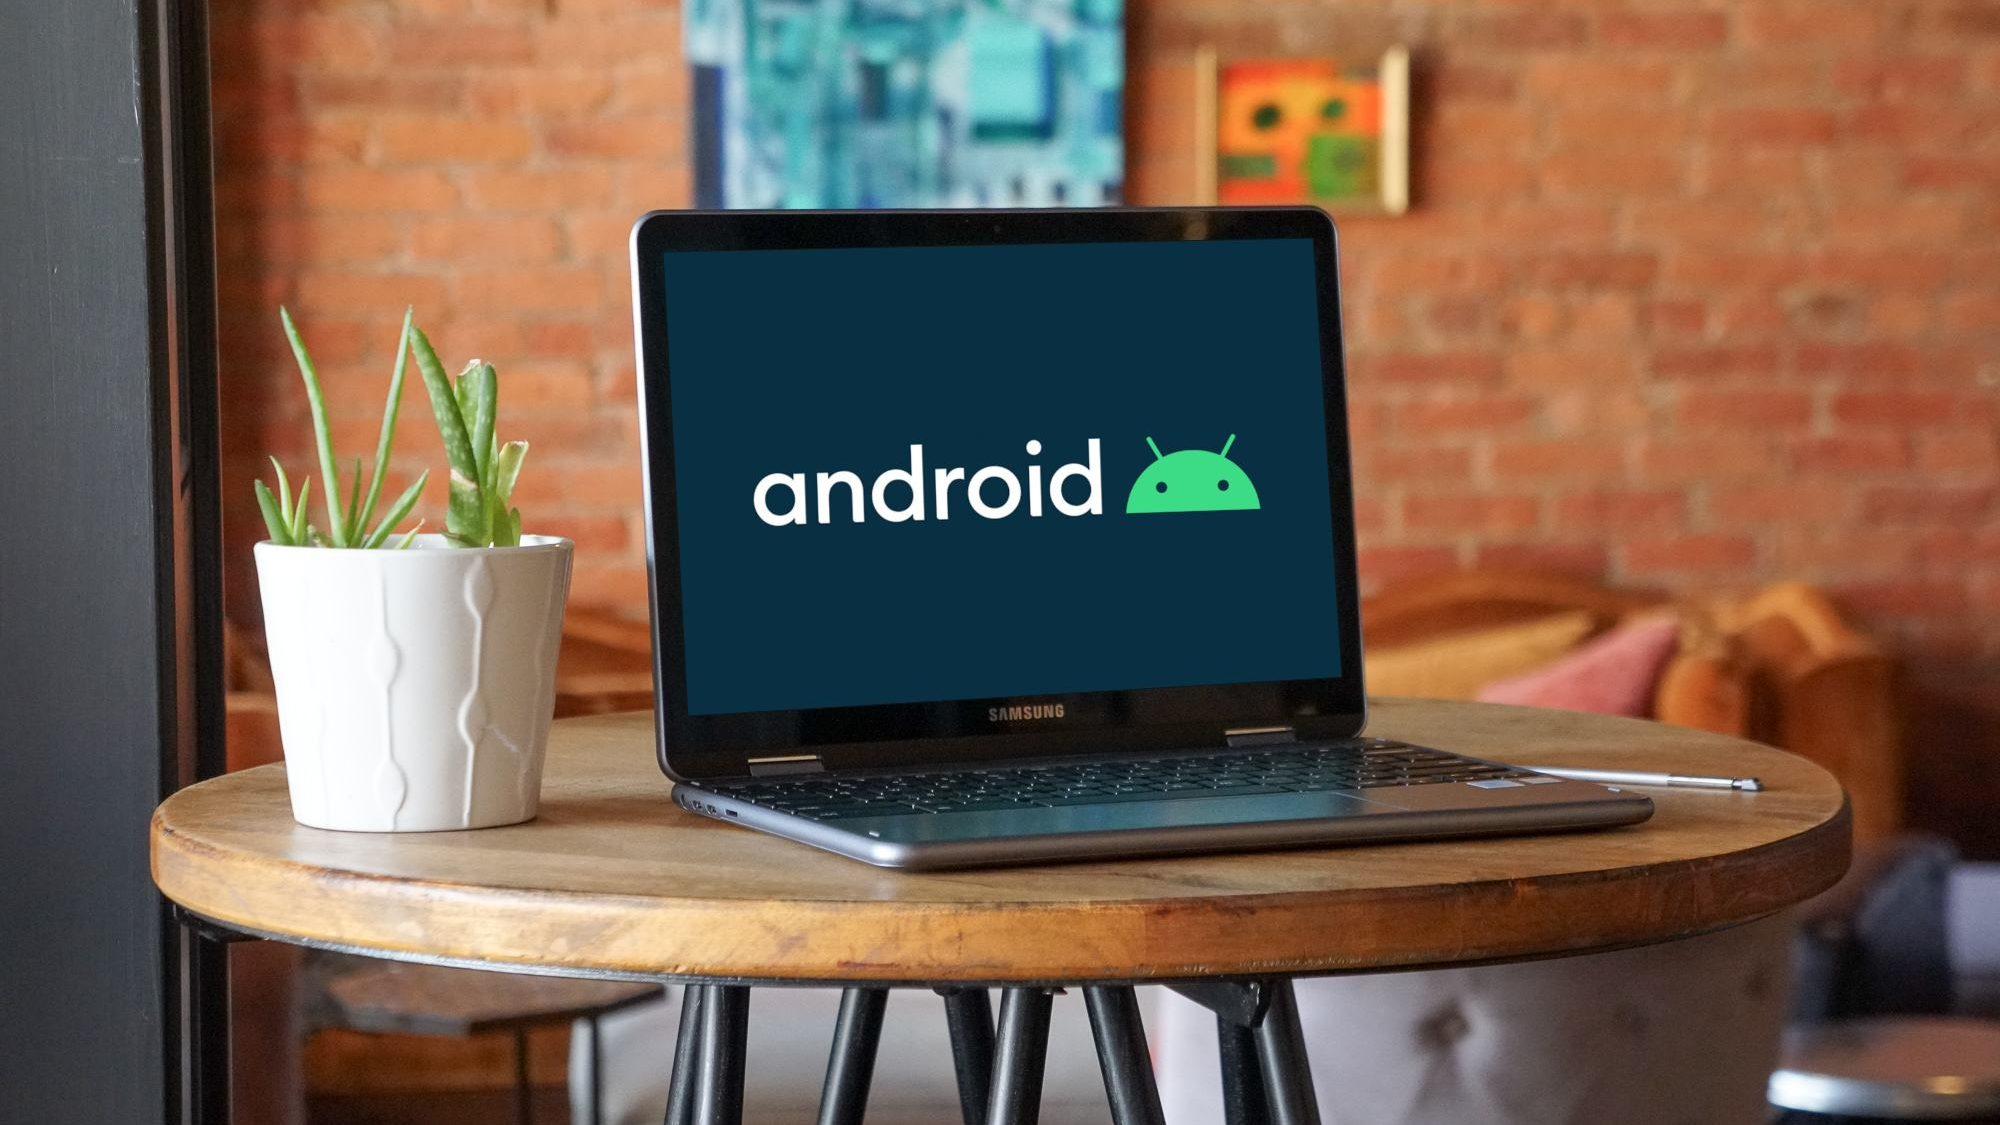 Android 11 coming to Chromebooks and will overhaul Android apps on Chrome OS